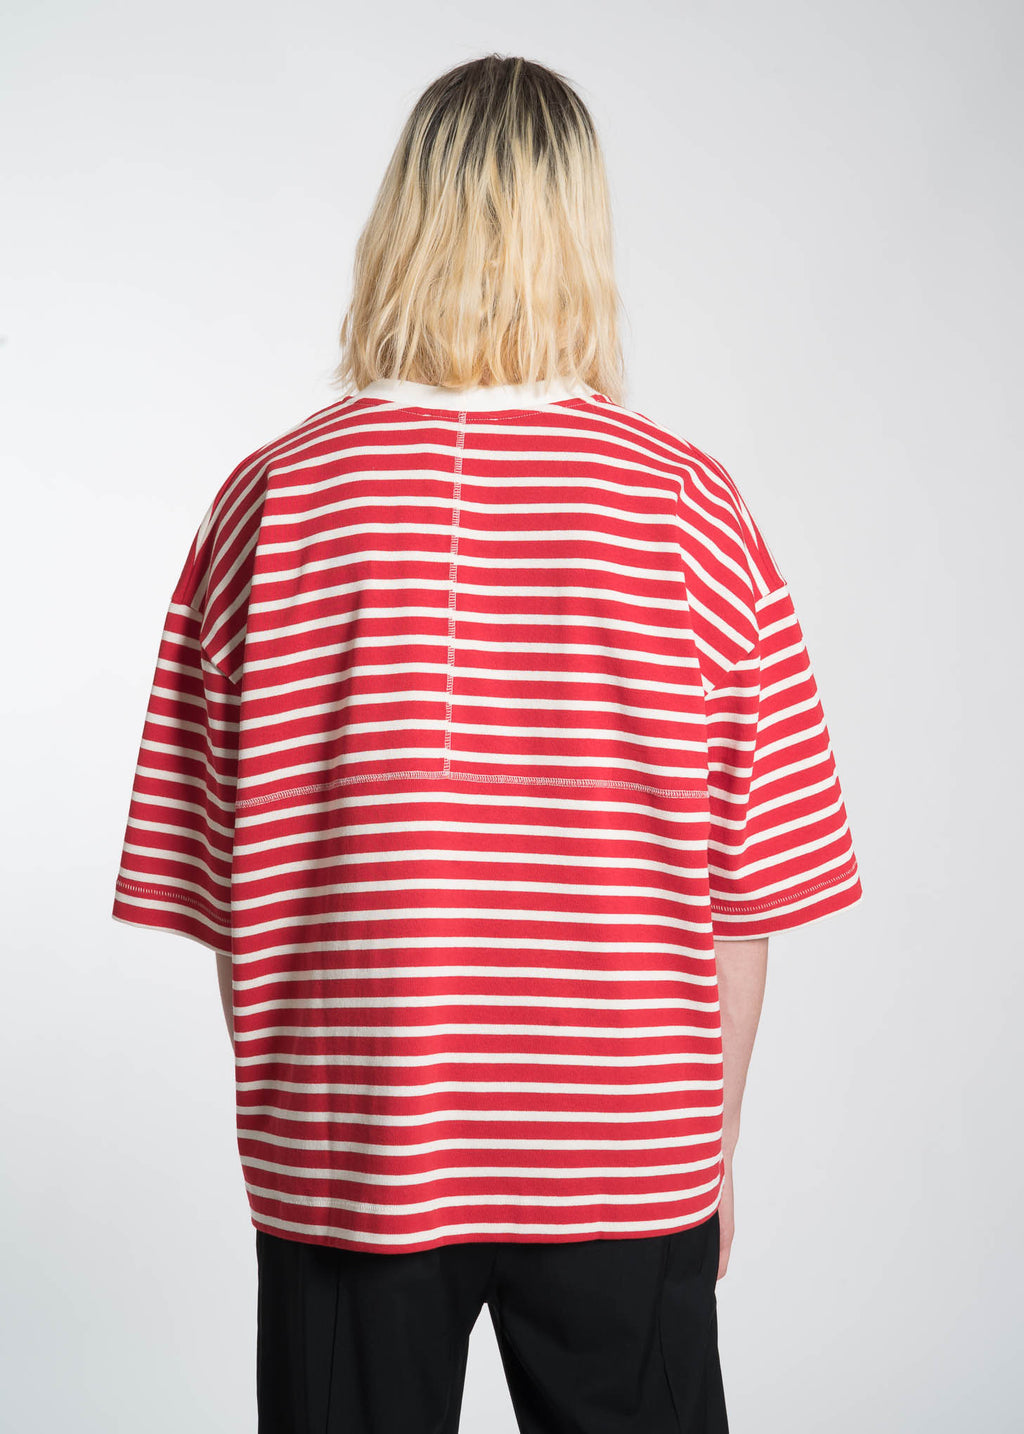 Etudes, Red Desert Striped T-Shirt, 017 Shop